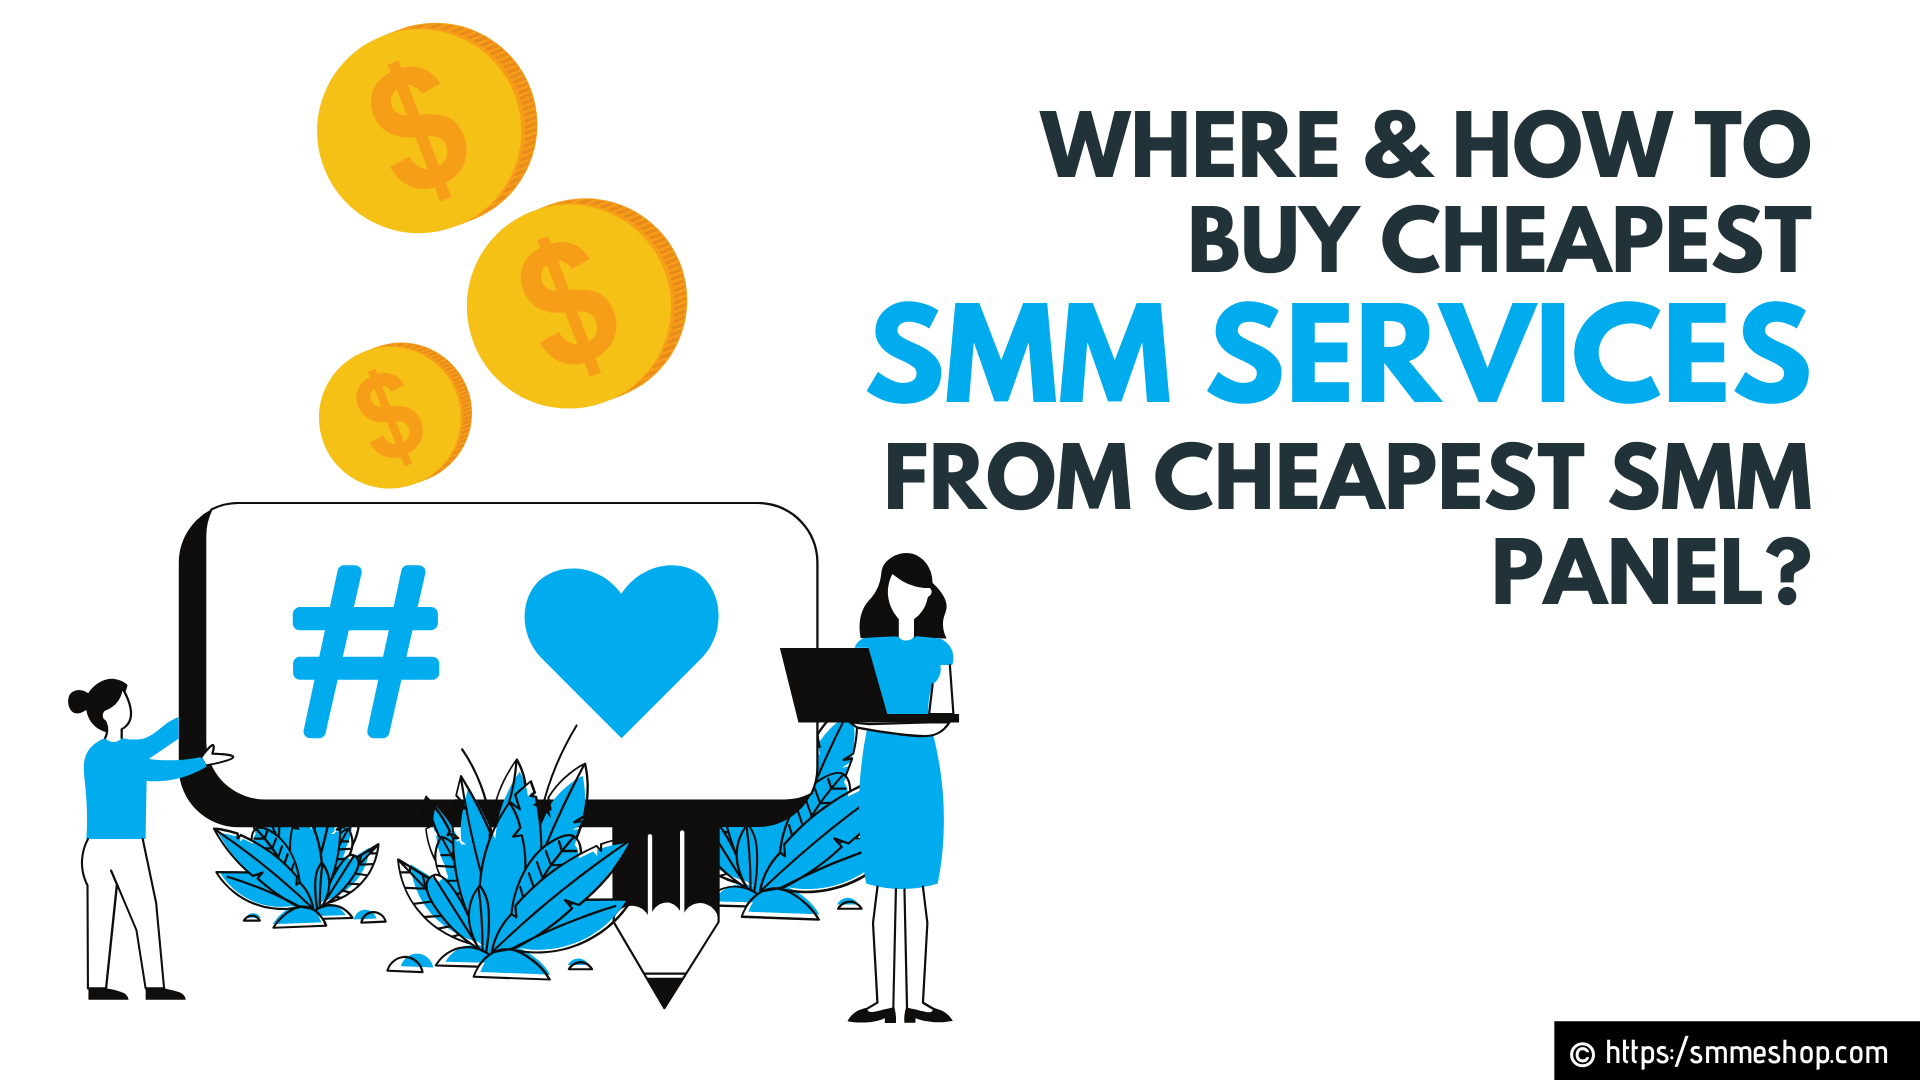 Where & How to Buy Cheapest SMM Services from Cheapest SMM Panel?